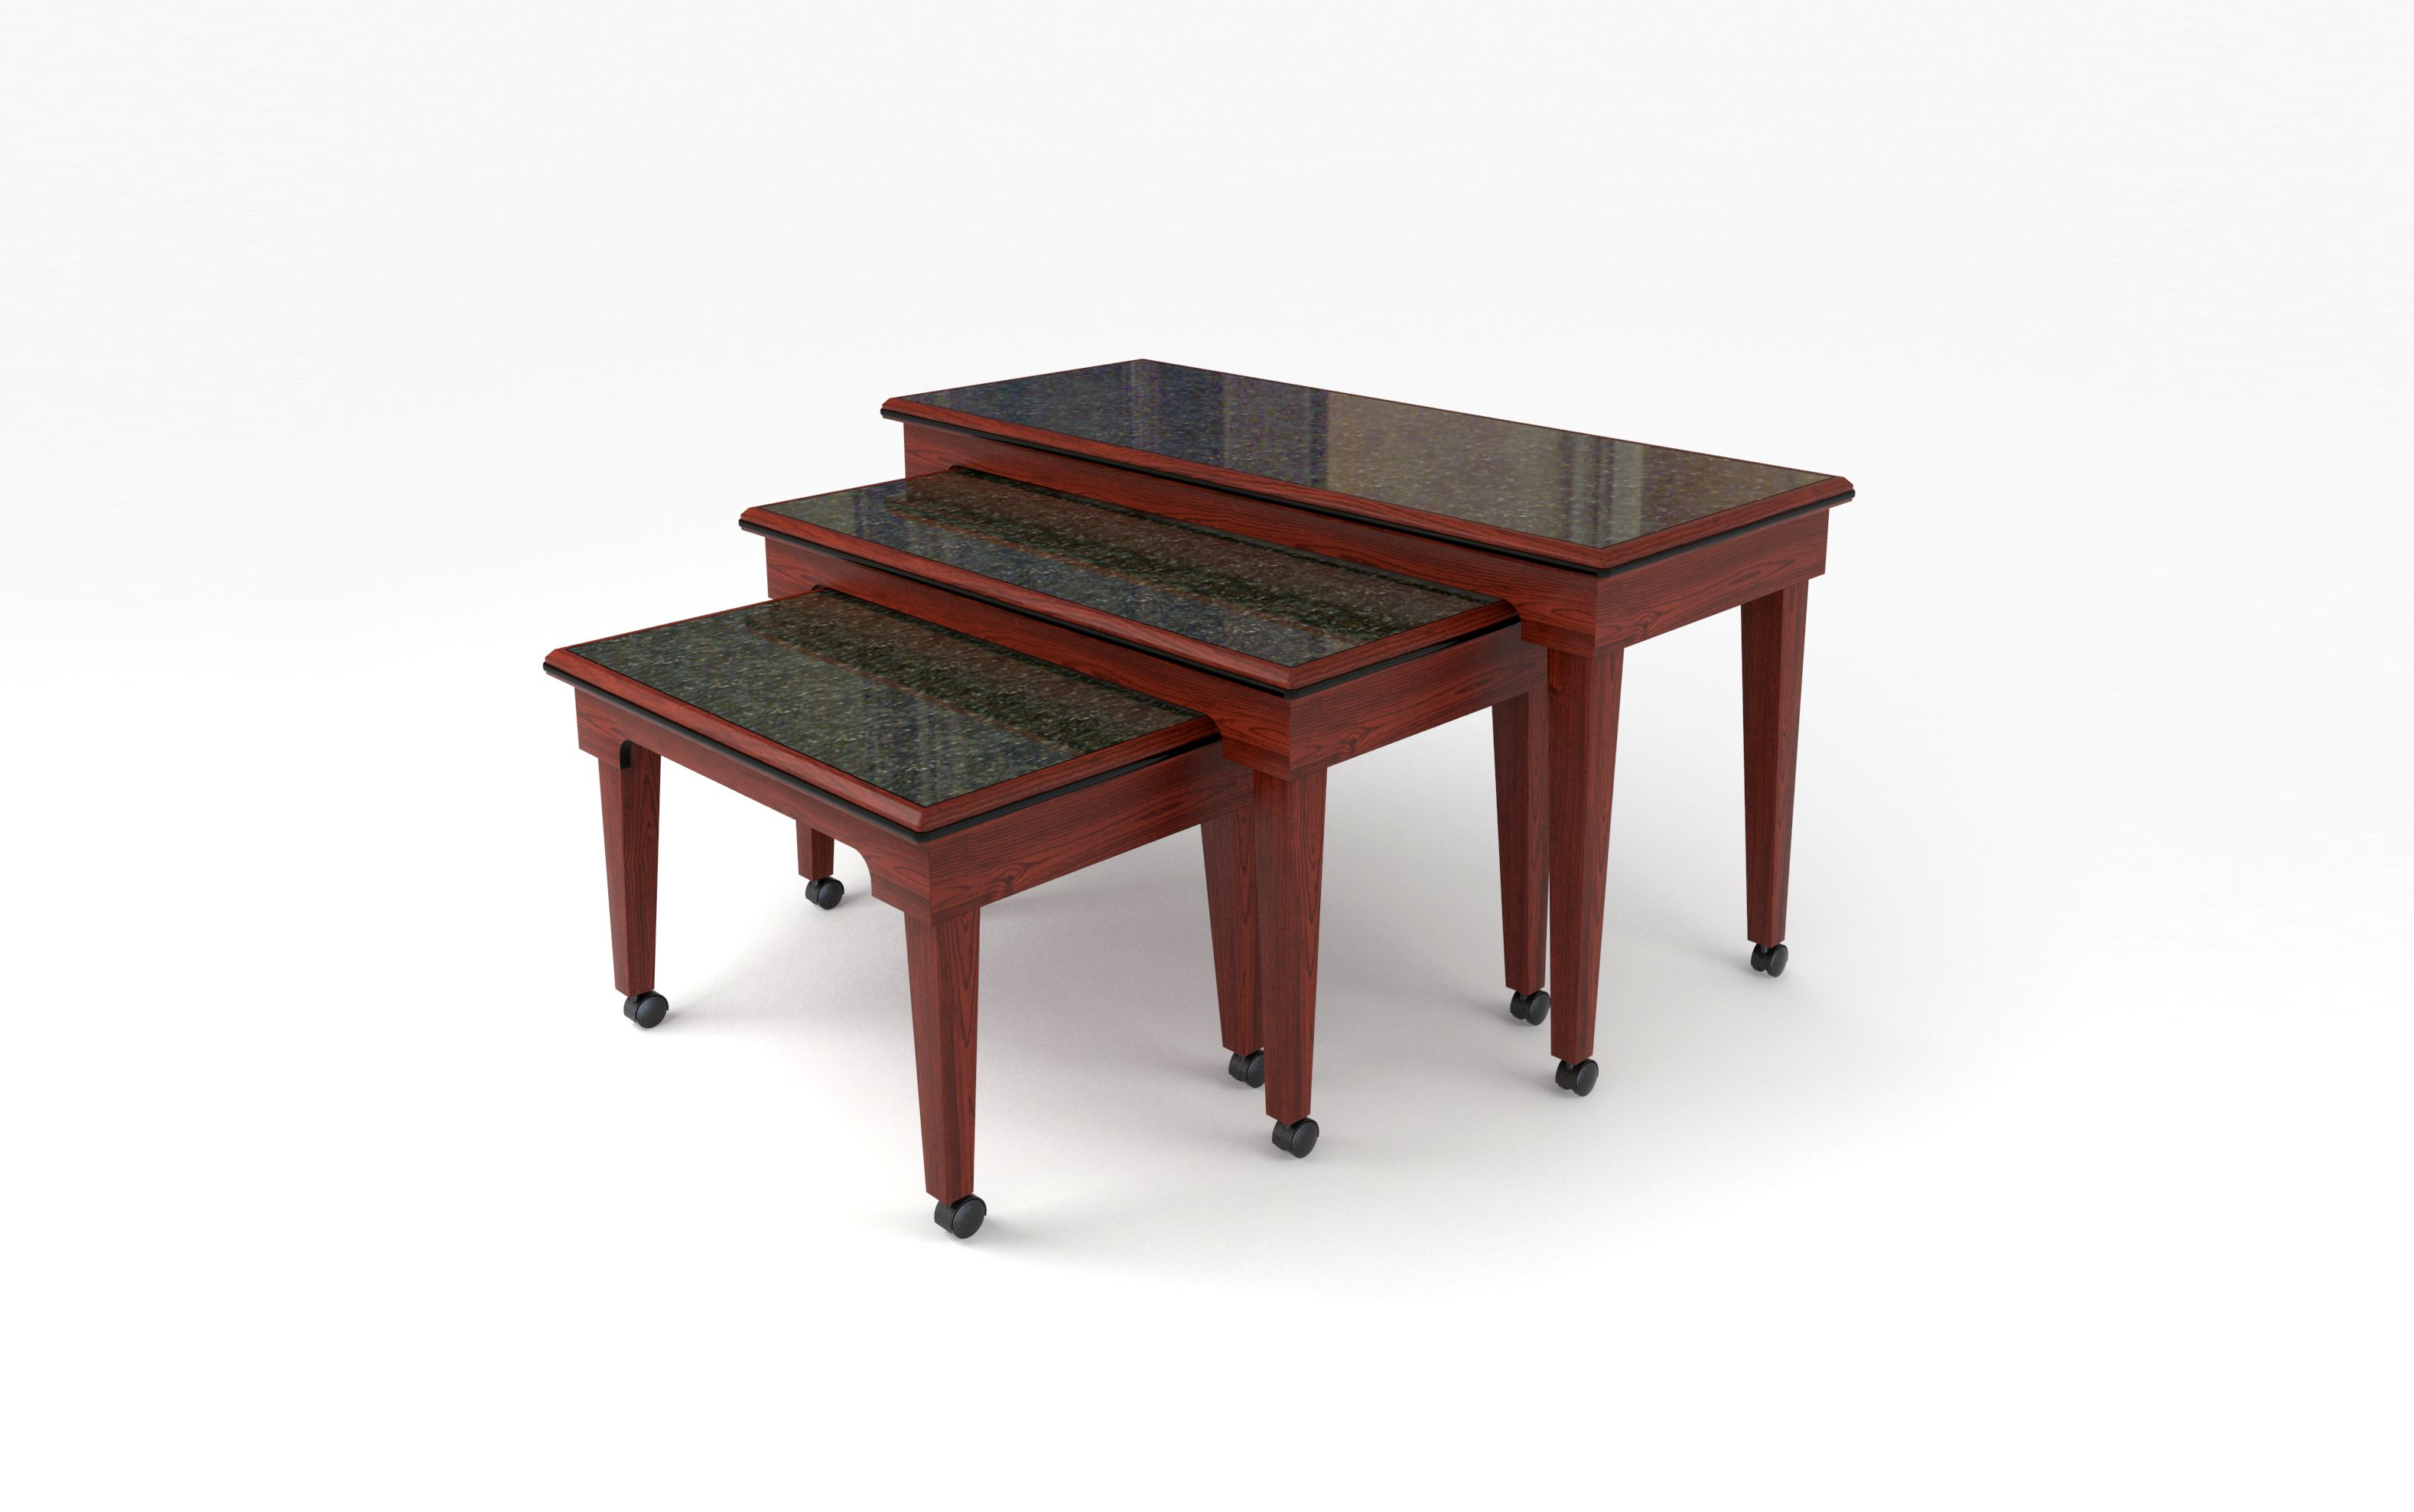 Nesting Tables Nesting Tables Lions Wood Banquet Furniture